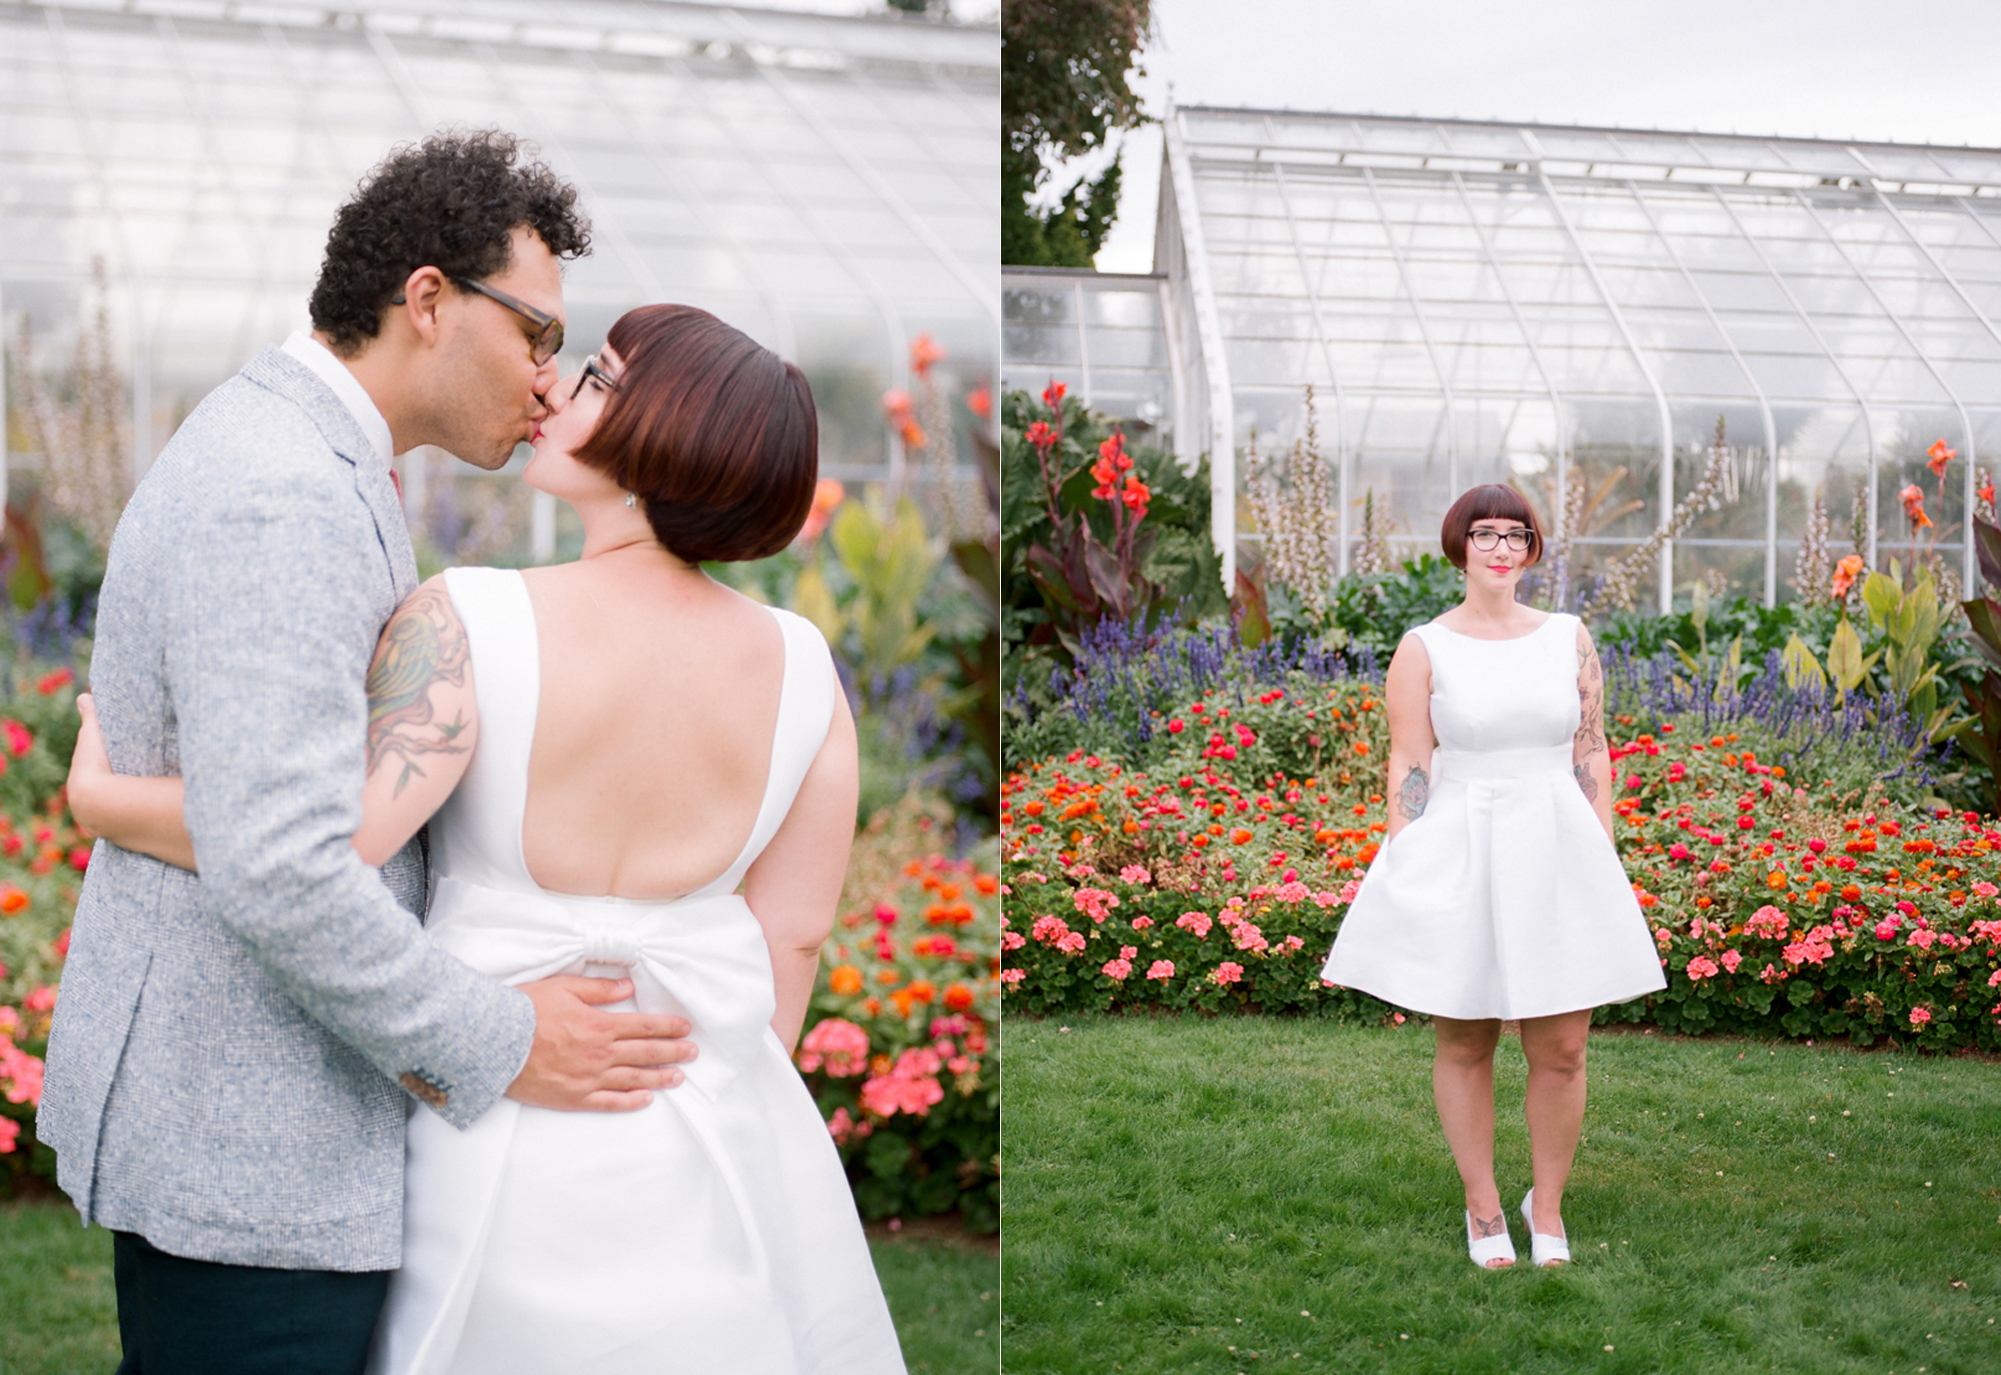 Bride and Groom Portraits at a Volunteer Park Conservatory Wedding.